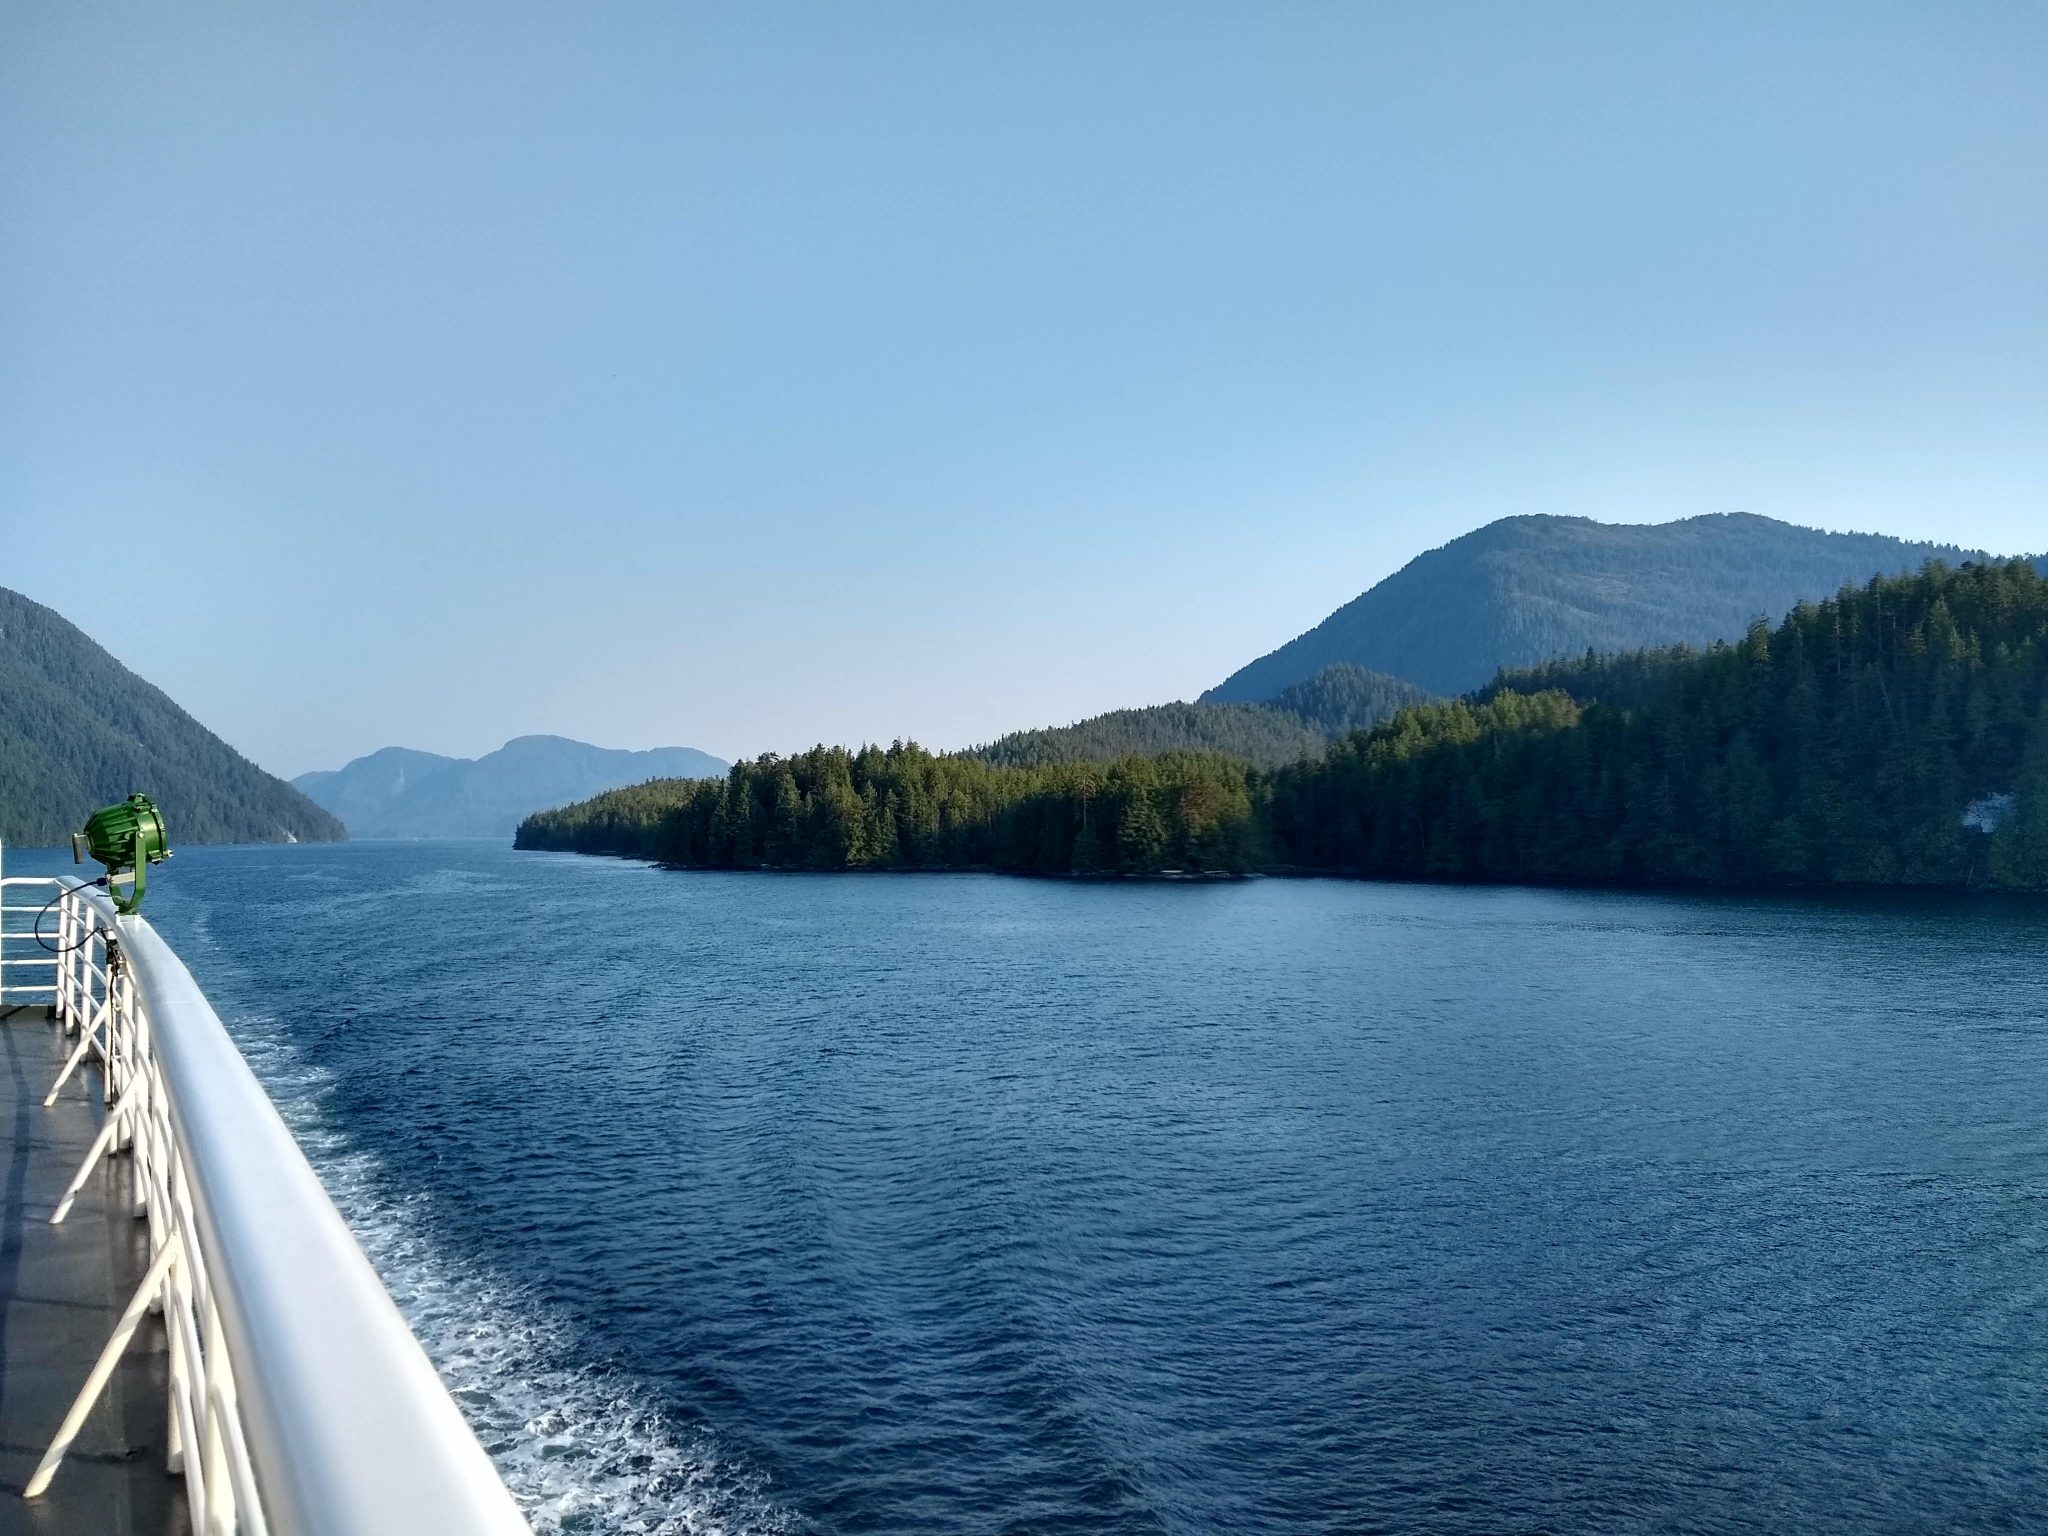 The railing and deck of the Alaska ferry are visible as it passes through a narrow channel between forests hills and mountains on a sunny day